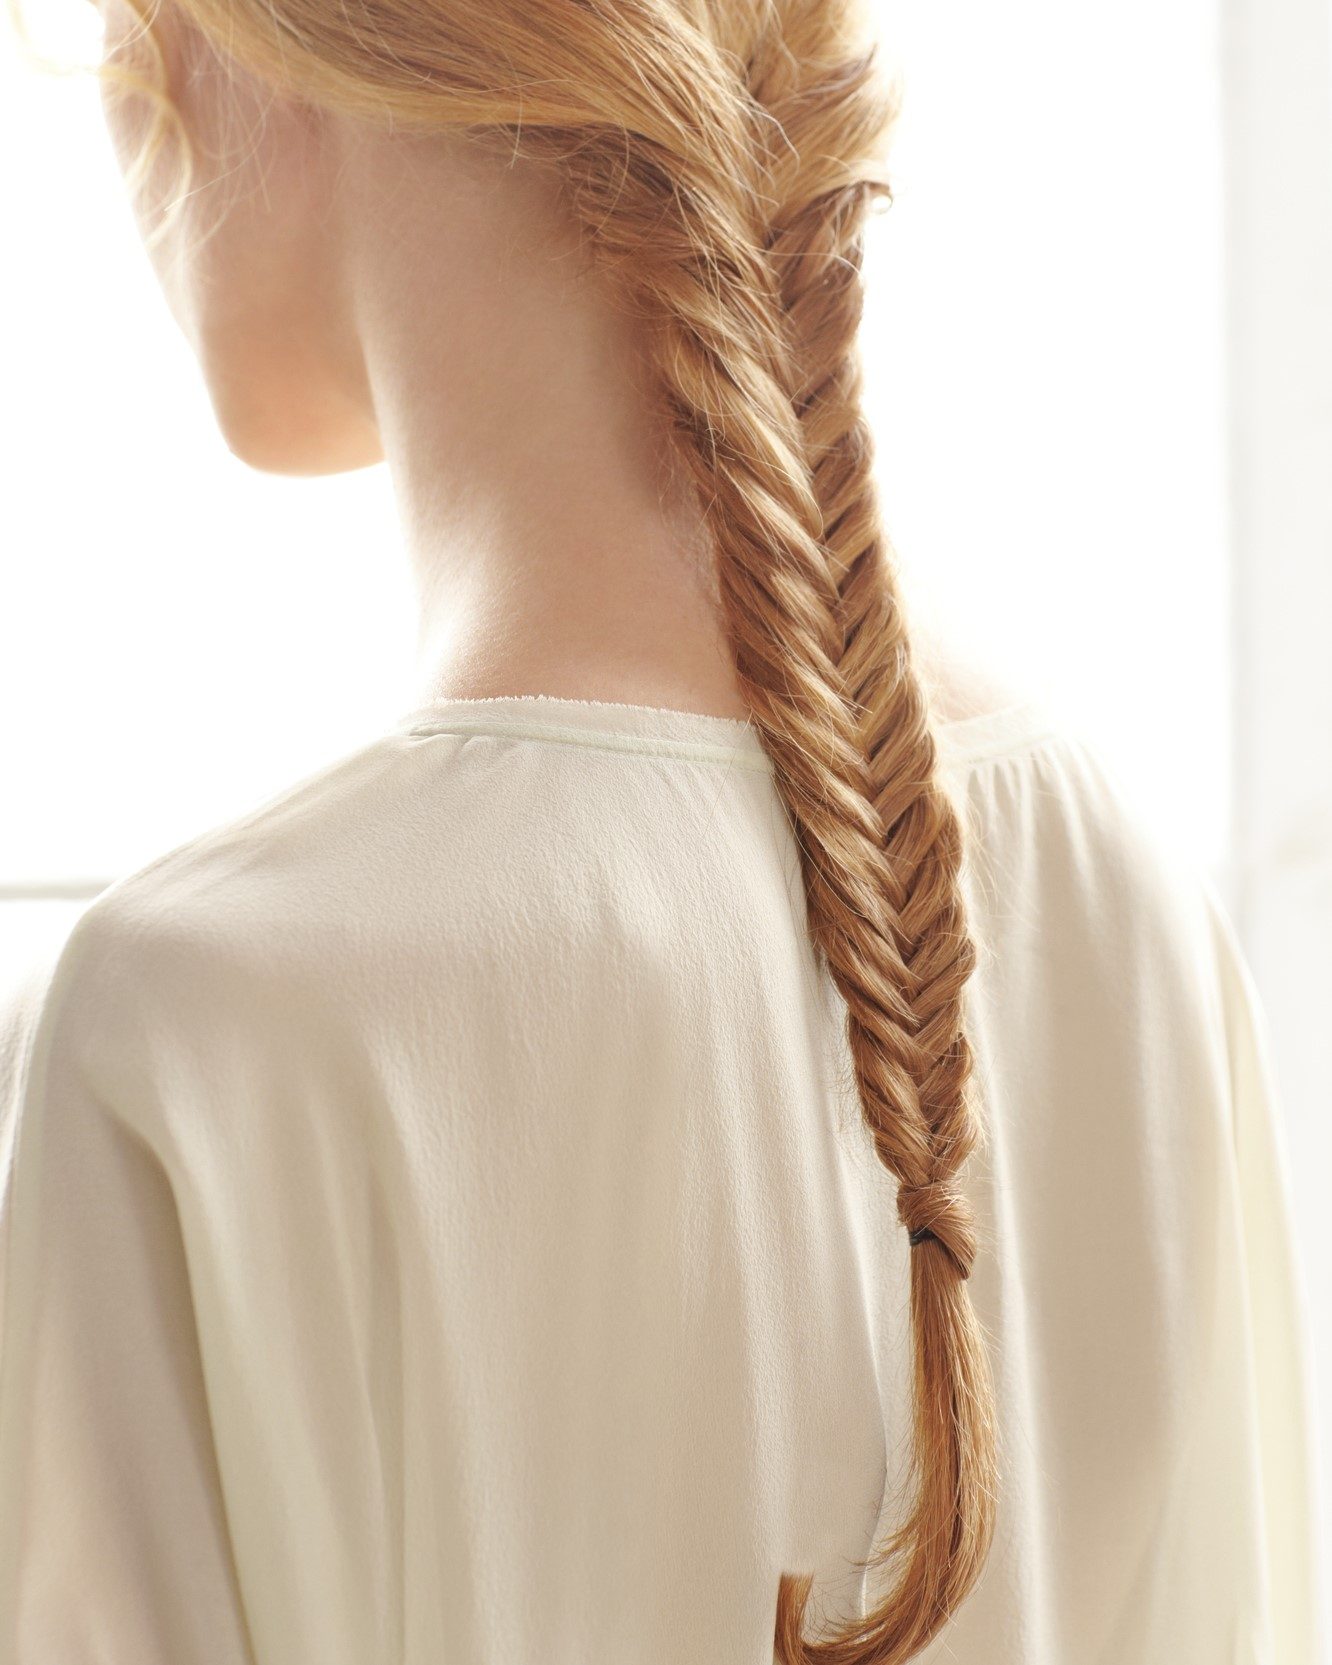 Tresse ''queue de poisson''.